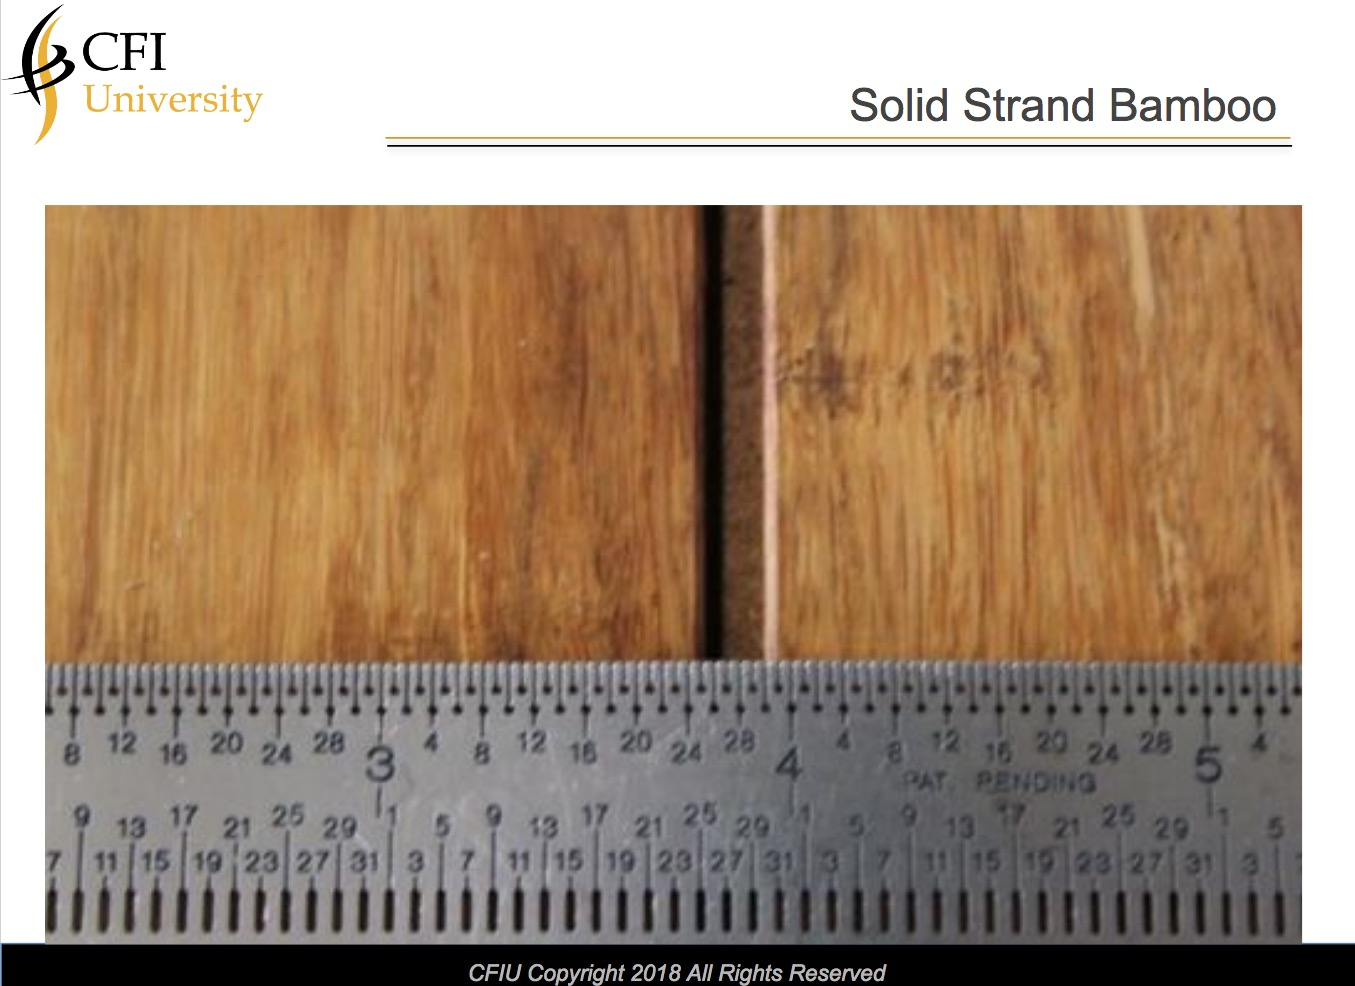 Solid Strand Bamboo Flooring Inspection Online Course